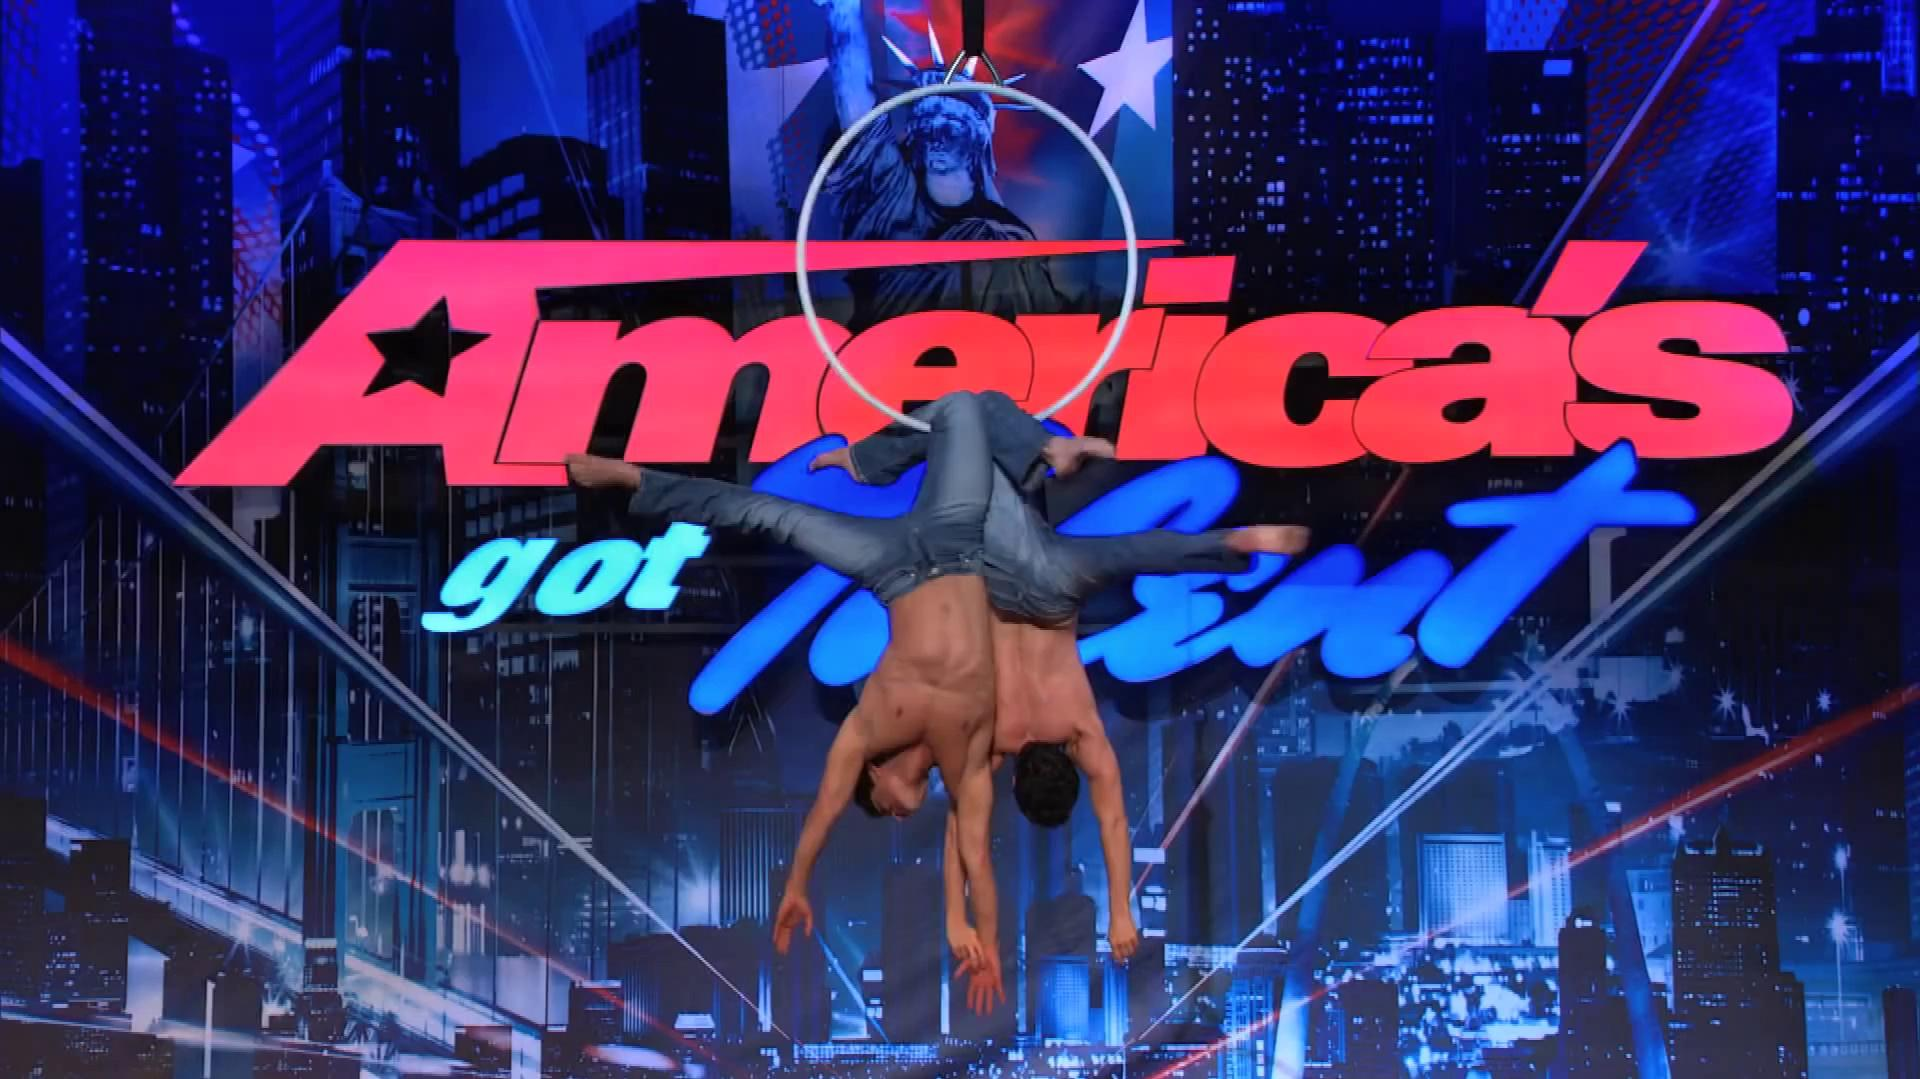 America's Got Talent 2013 - Season 8 - 095 - Tavi & Antonio - Acrobatic Duet Gets Howard and Howie to Kiss